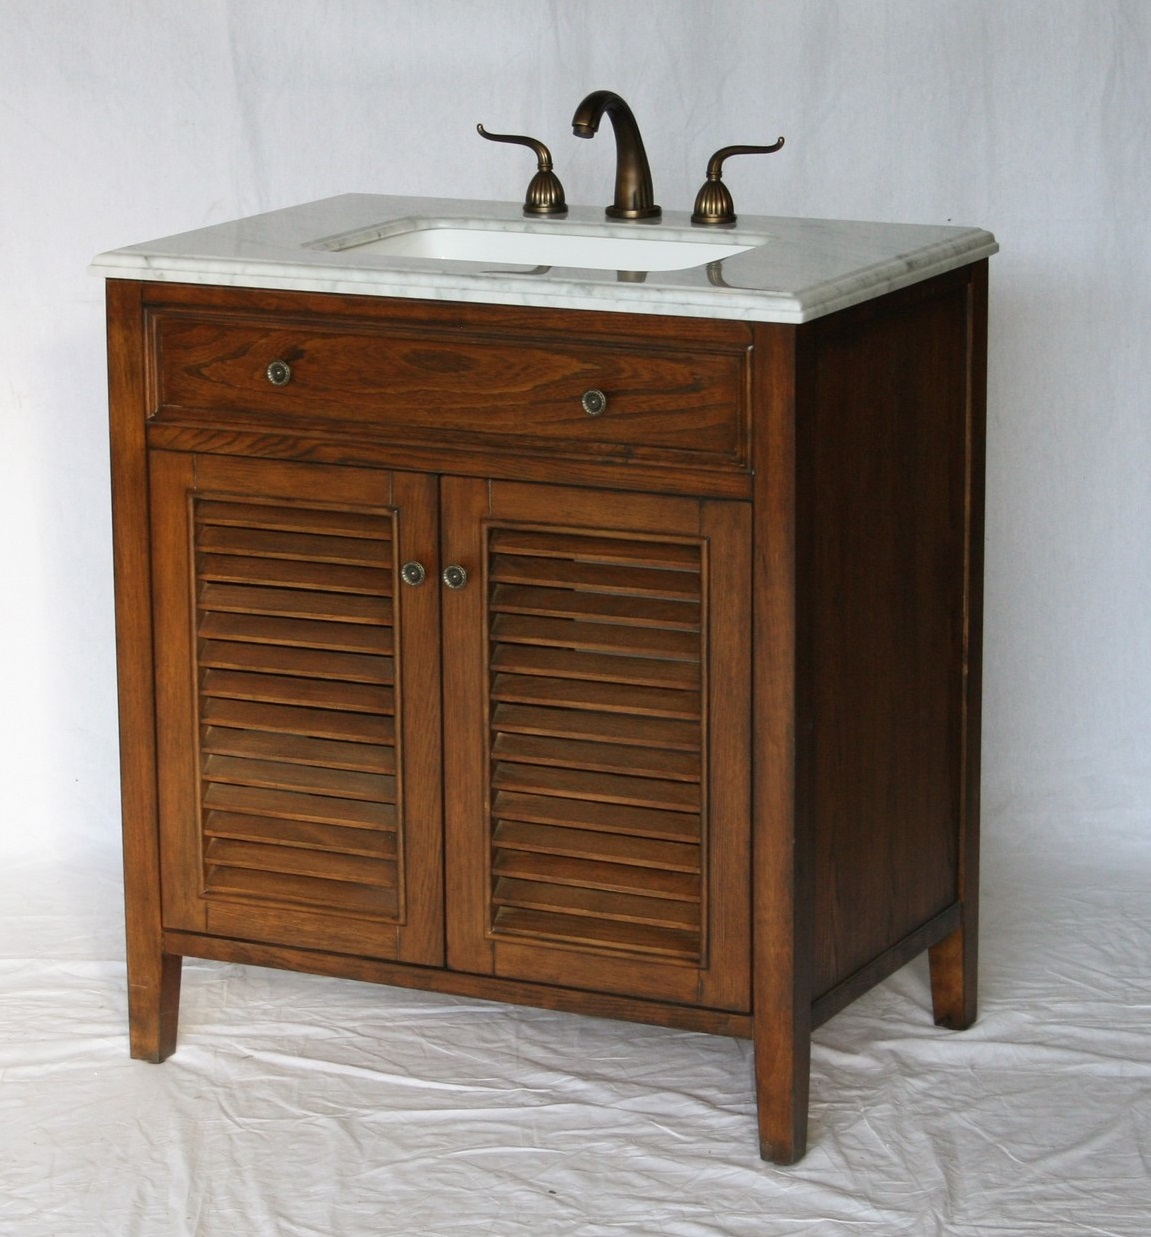 32 inch bathroom vanity coastal cottage beach vintage style walnut color 32 wx21 dx35 h s332832s for Bathroom vanities vintage style